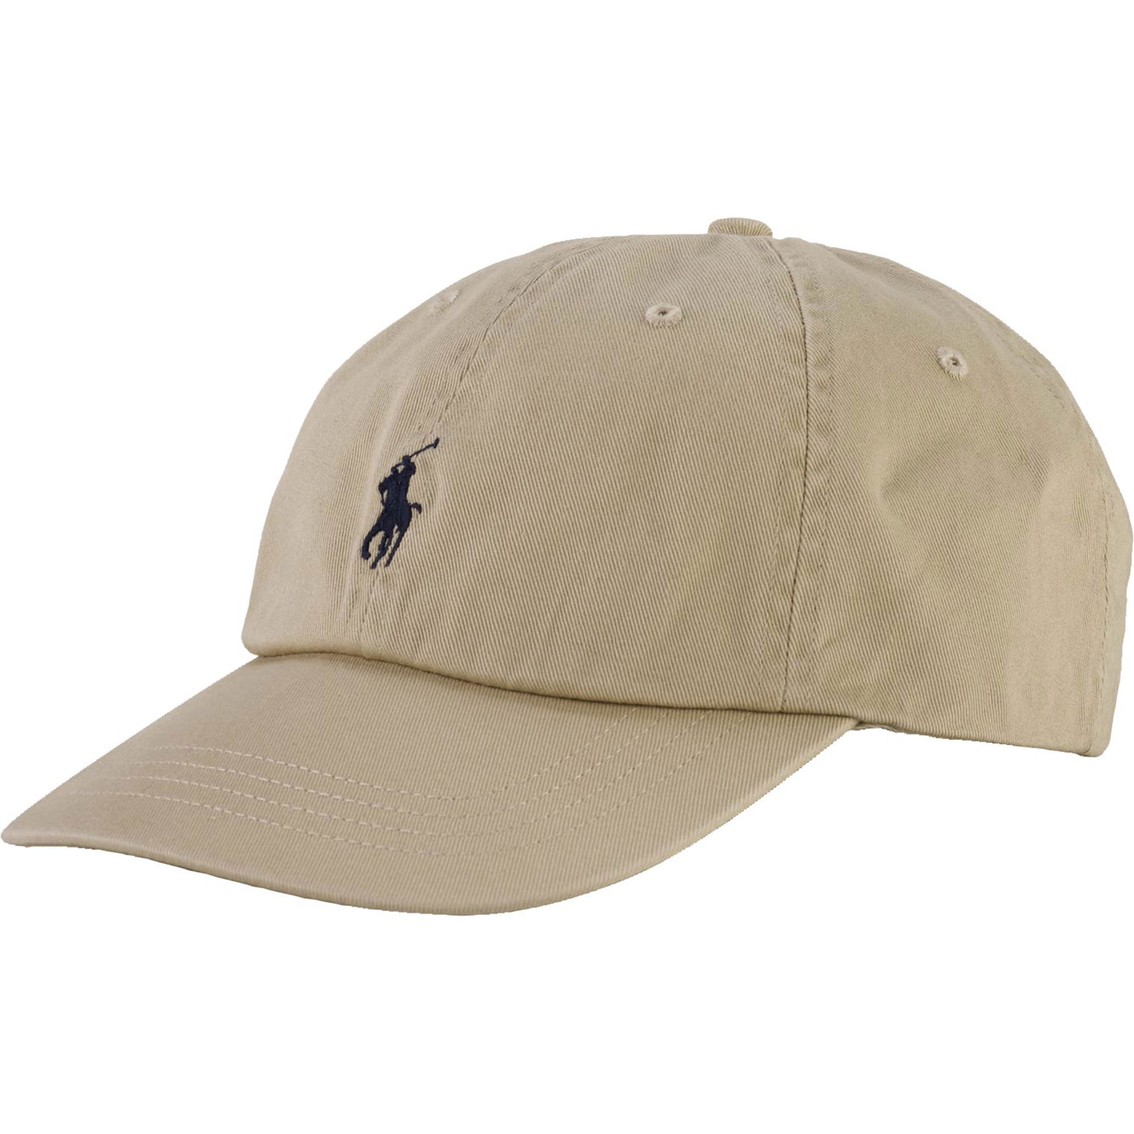 polo ralph lauren classic chino sports cap ball caps. Black Bedroom Furniture Sets. Home Design Ideas